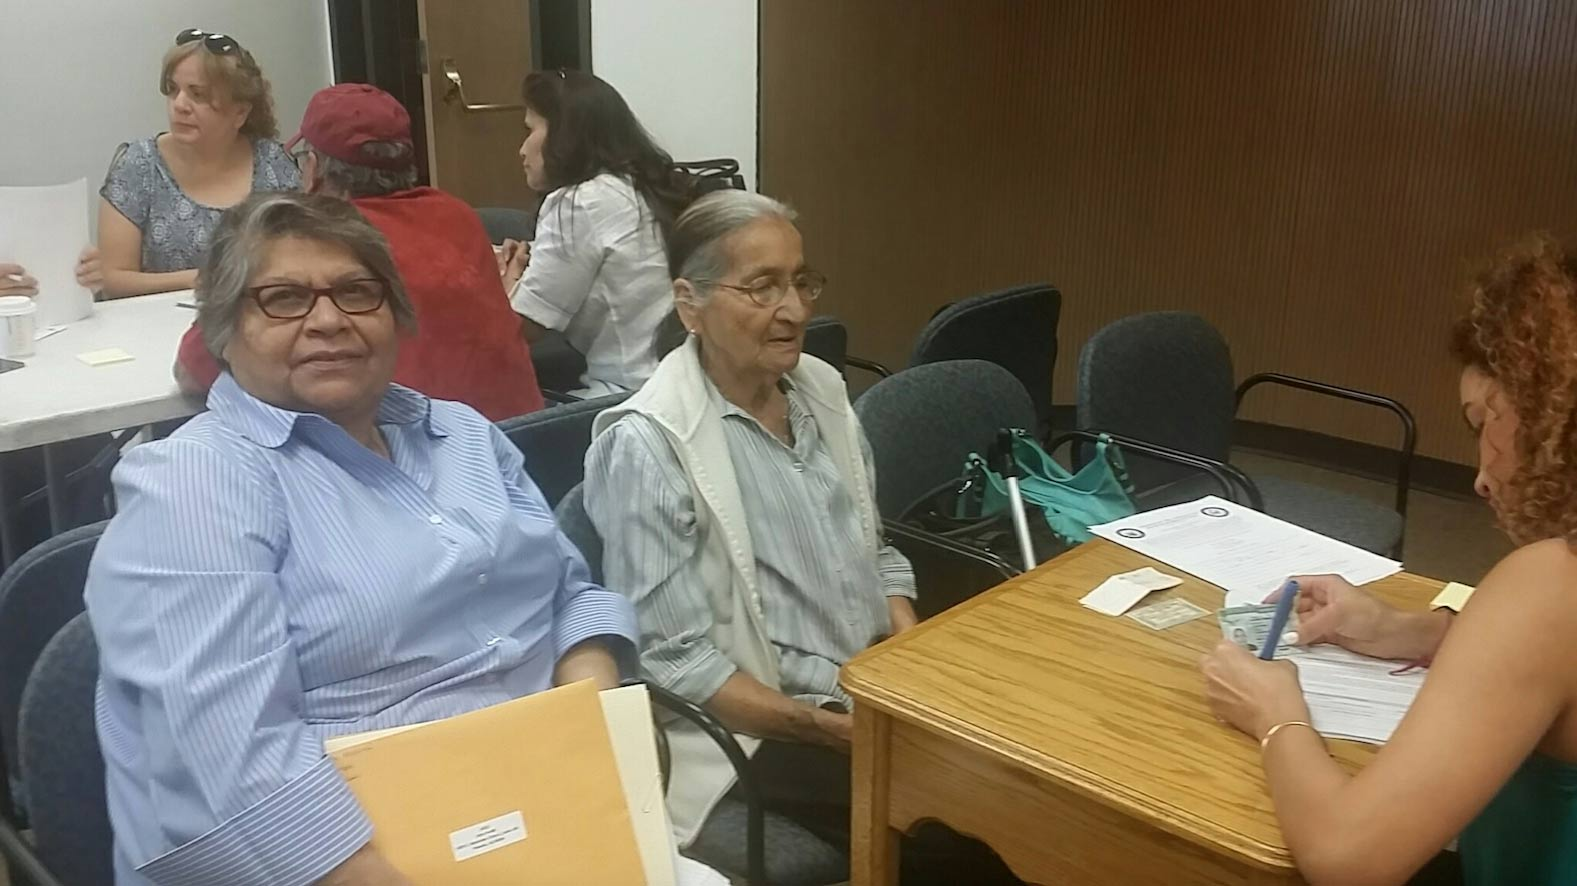 Ildi Flores, center, and Amanda Castro, left, a friend, meet with a volunteer to start the paperwork for Flores' citizenship in Nogales, May 2017.